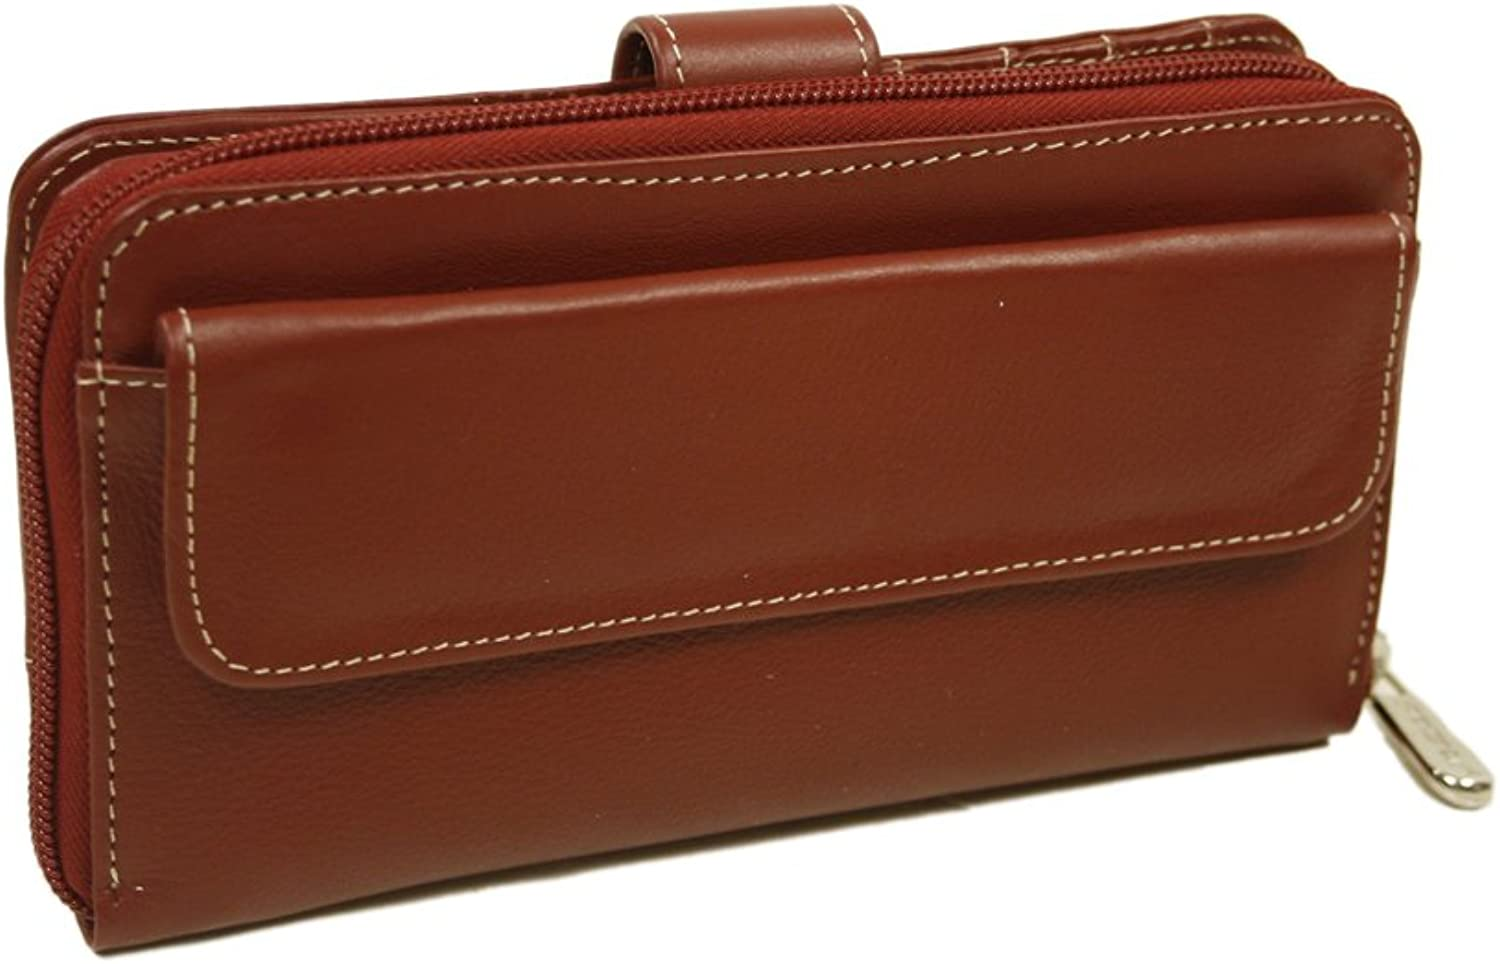 Piel Leather Ladies MultiCompartment Wallet, Red, One Size